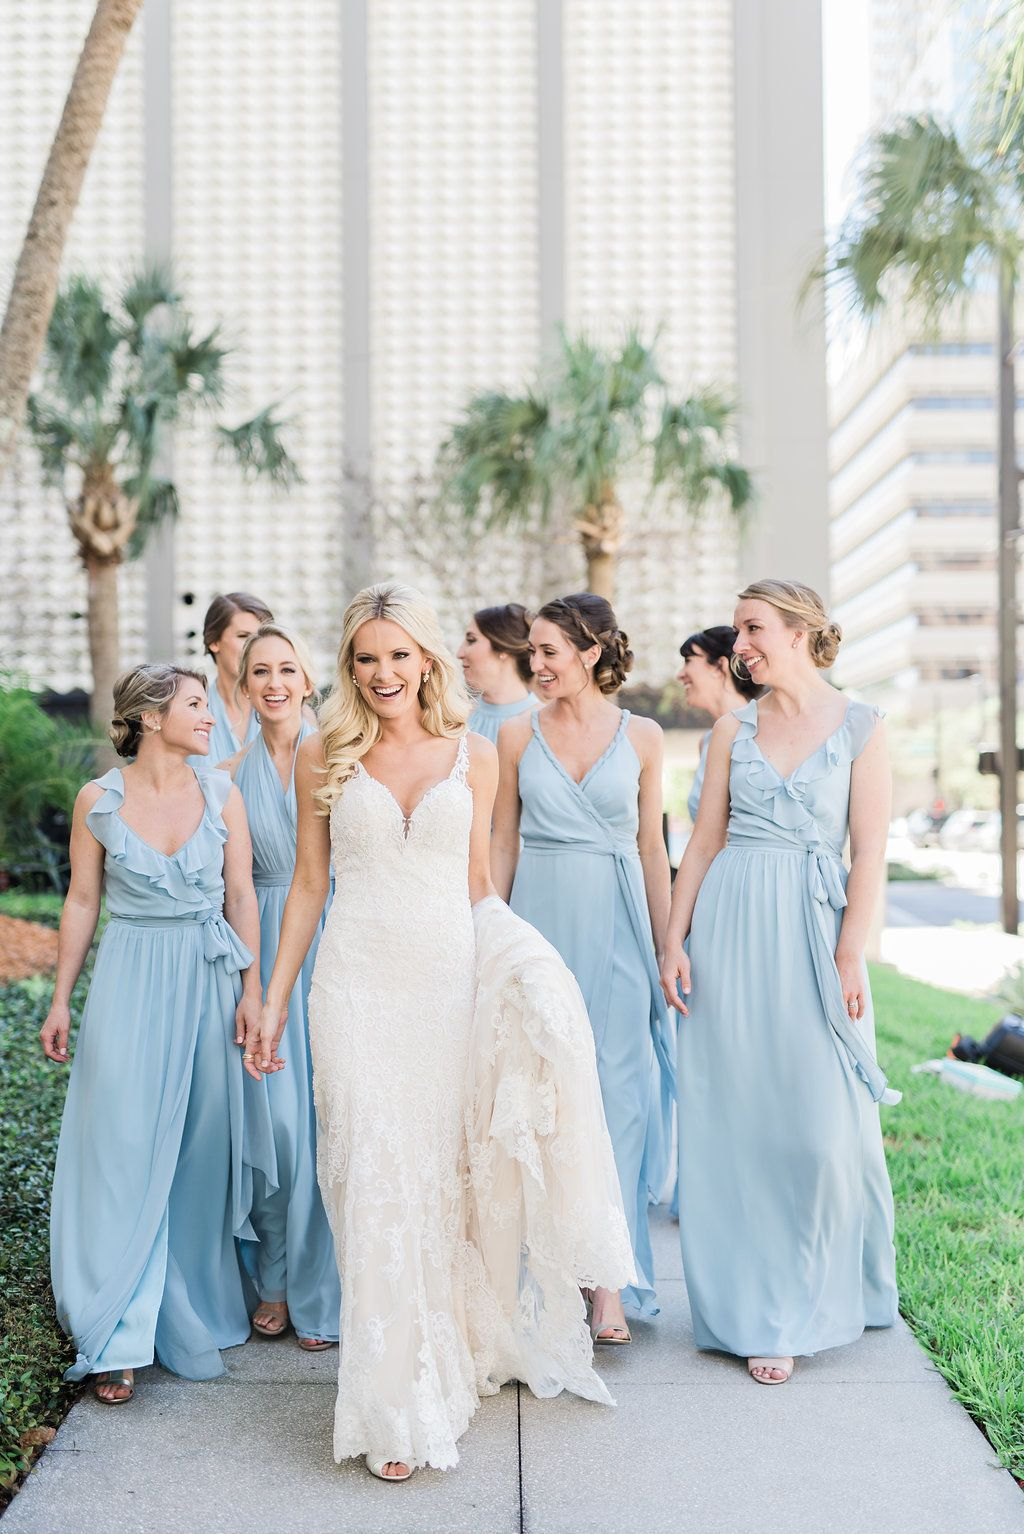 Uptown Chic Meets Rustic Farmhouse With This Glamorous Affair Baby Blue Bridesmaid Dresses Pastel Bridesmaid Dresses Light Blue Bridesmaid